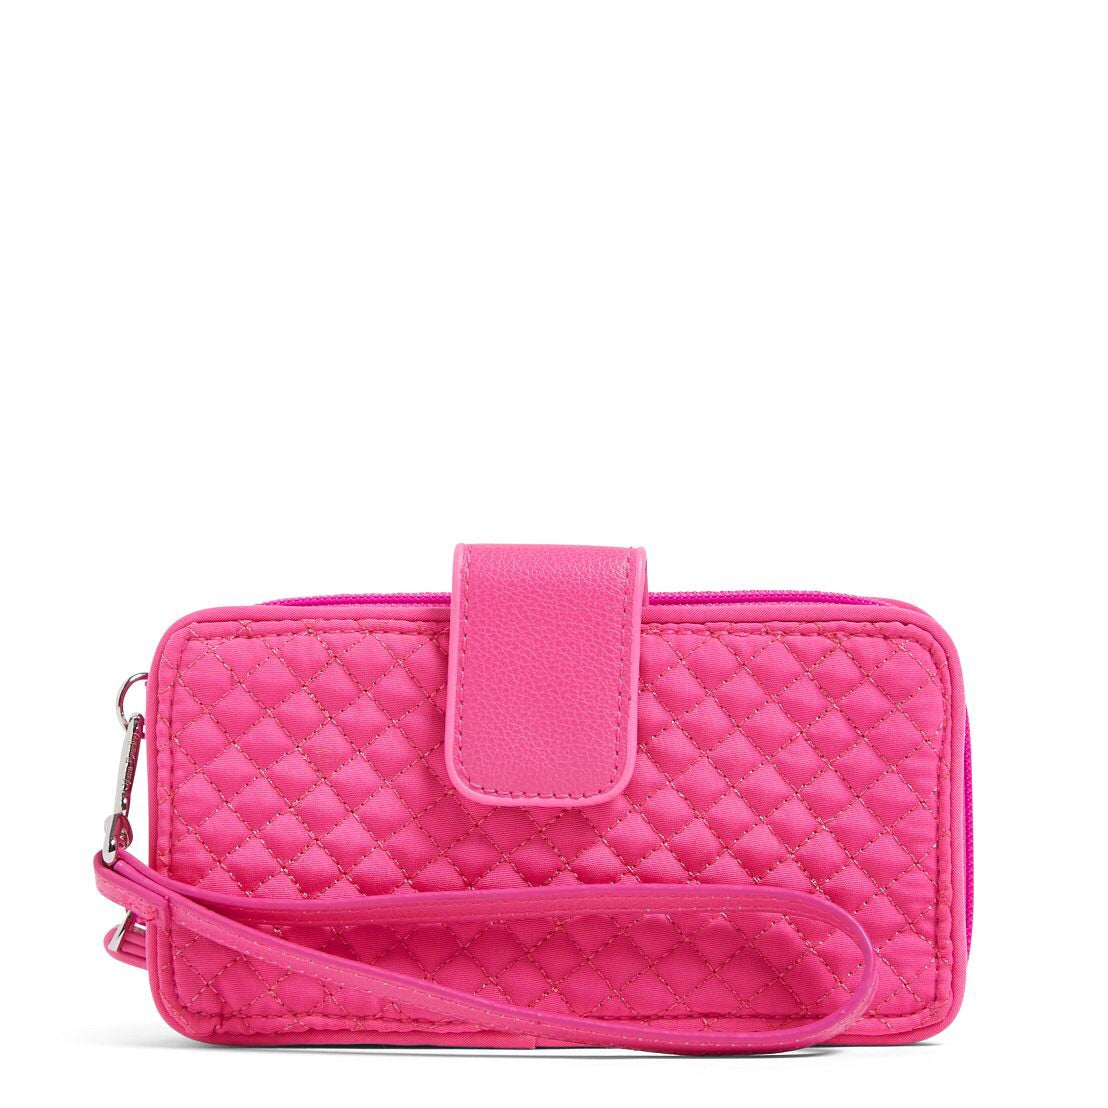 Iconic RDIF smartphone Wristlet - rose petal